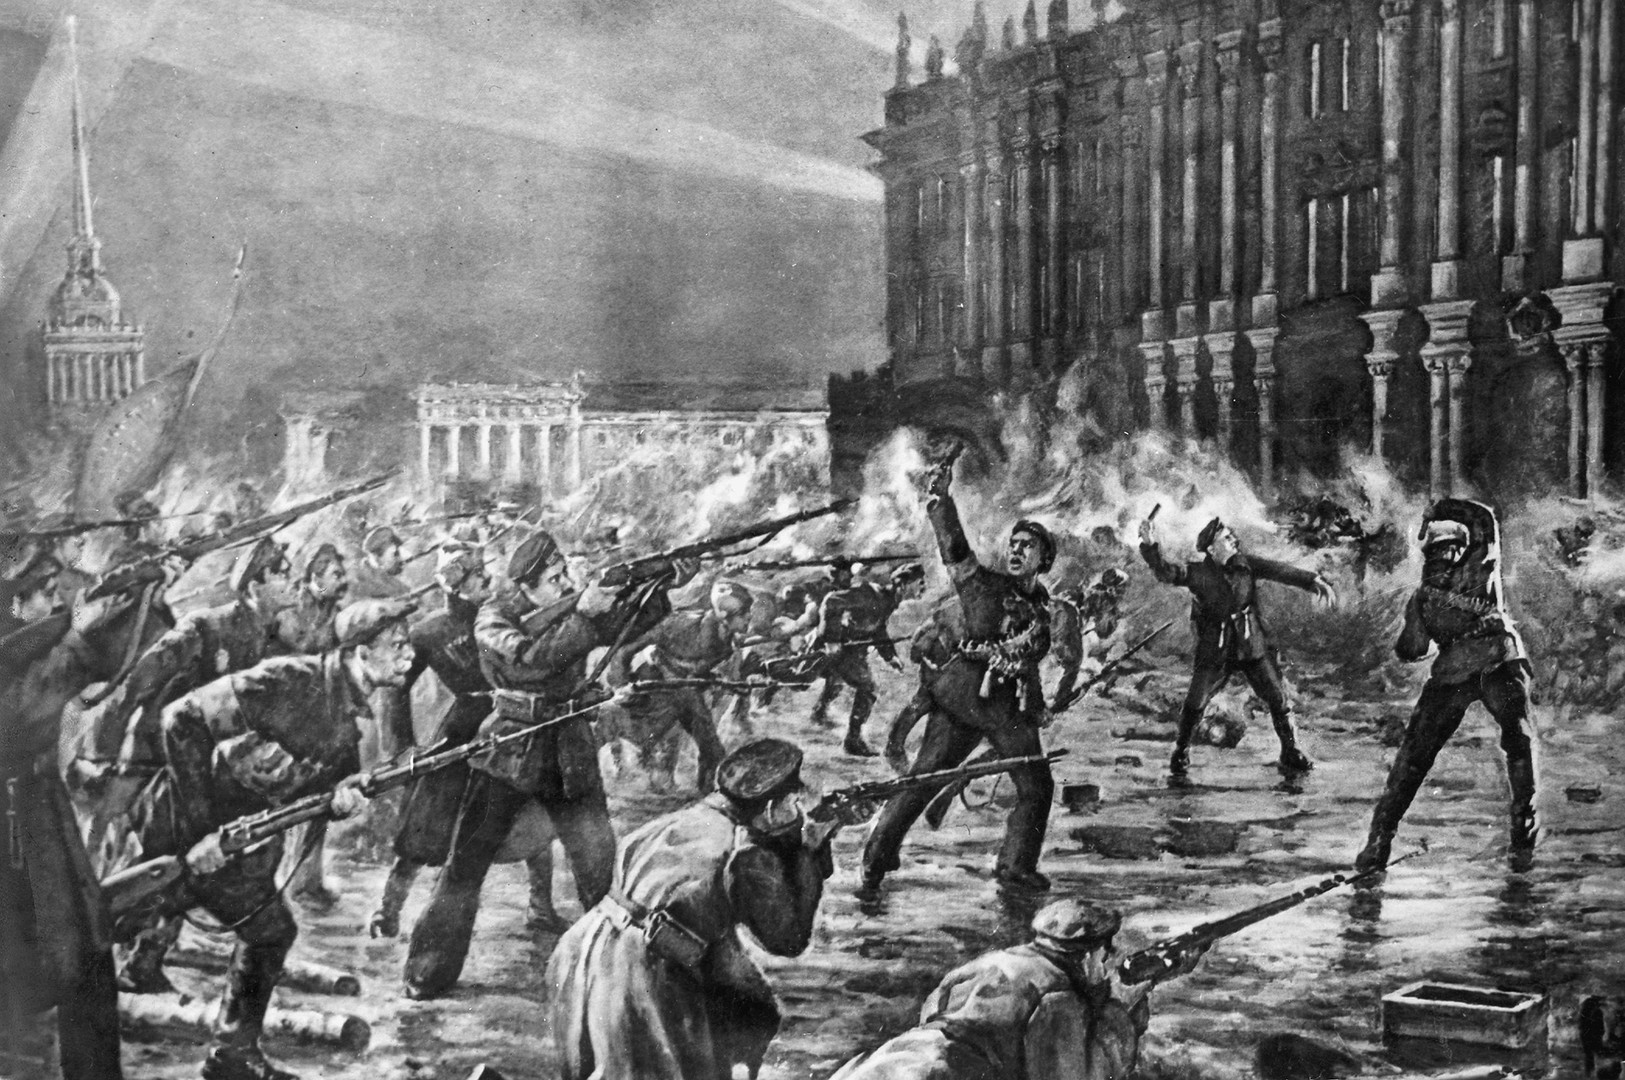 The Red Guards, soldiers and sailors, stormed the former Tsar's palace (Winter Palace) in November 1917.